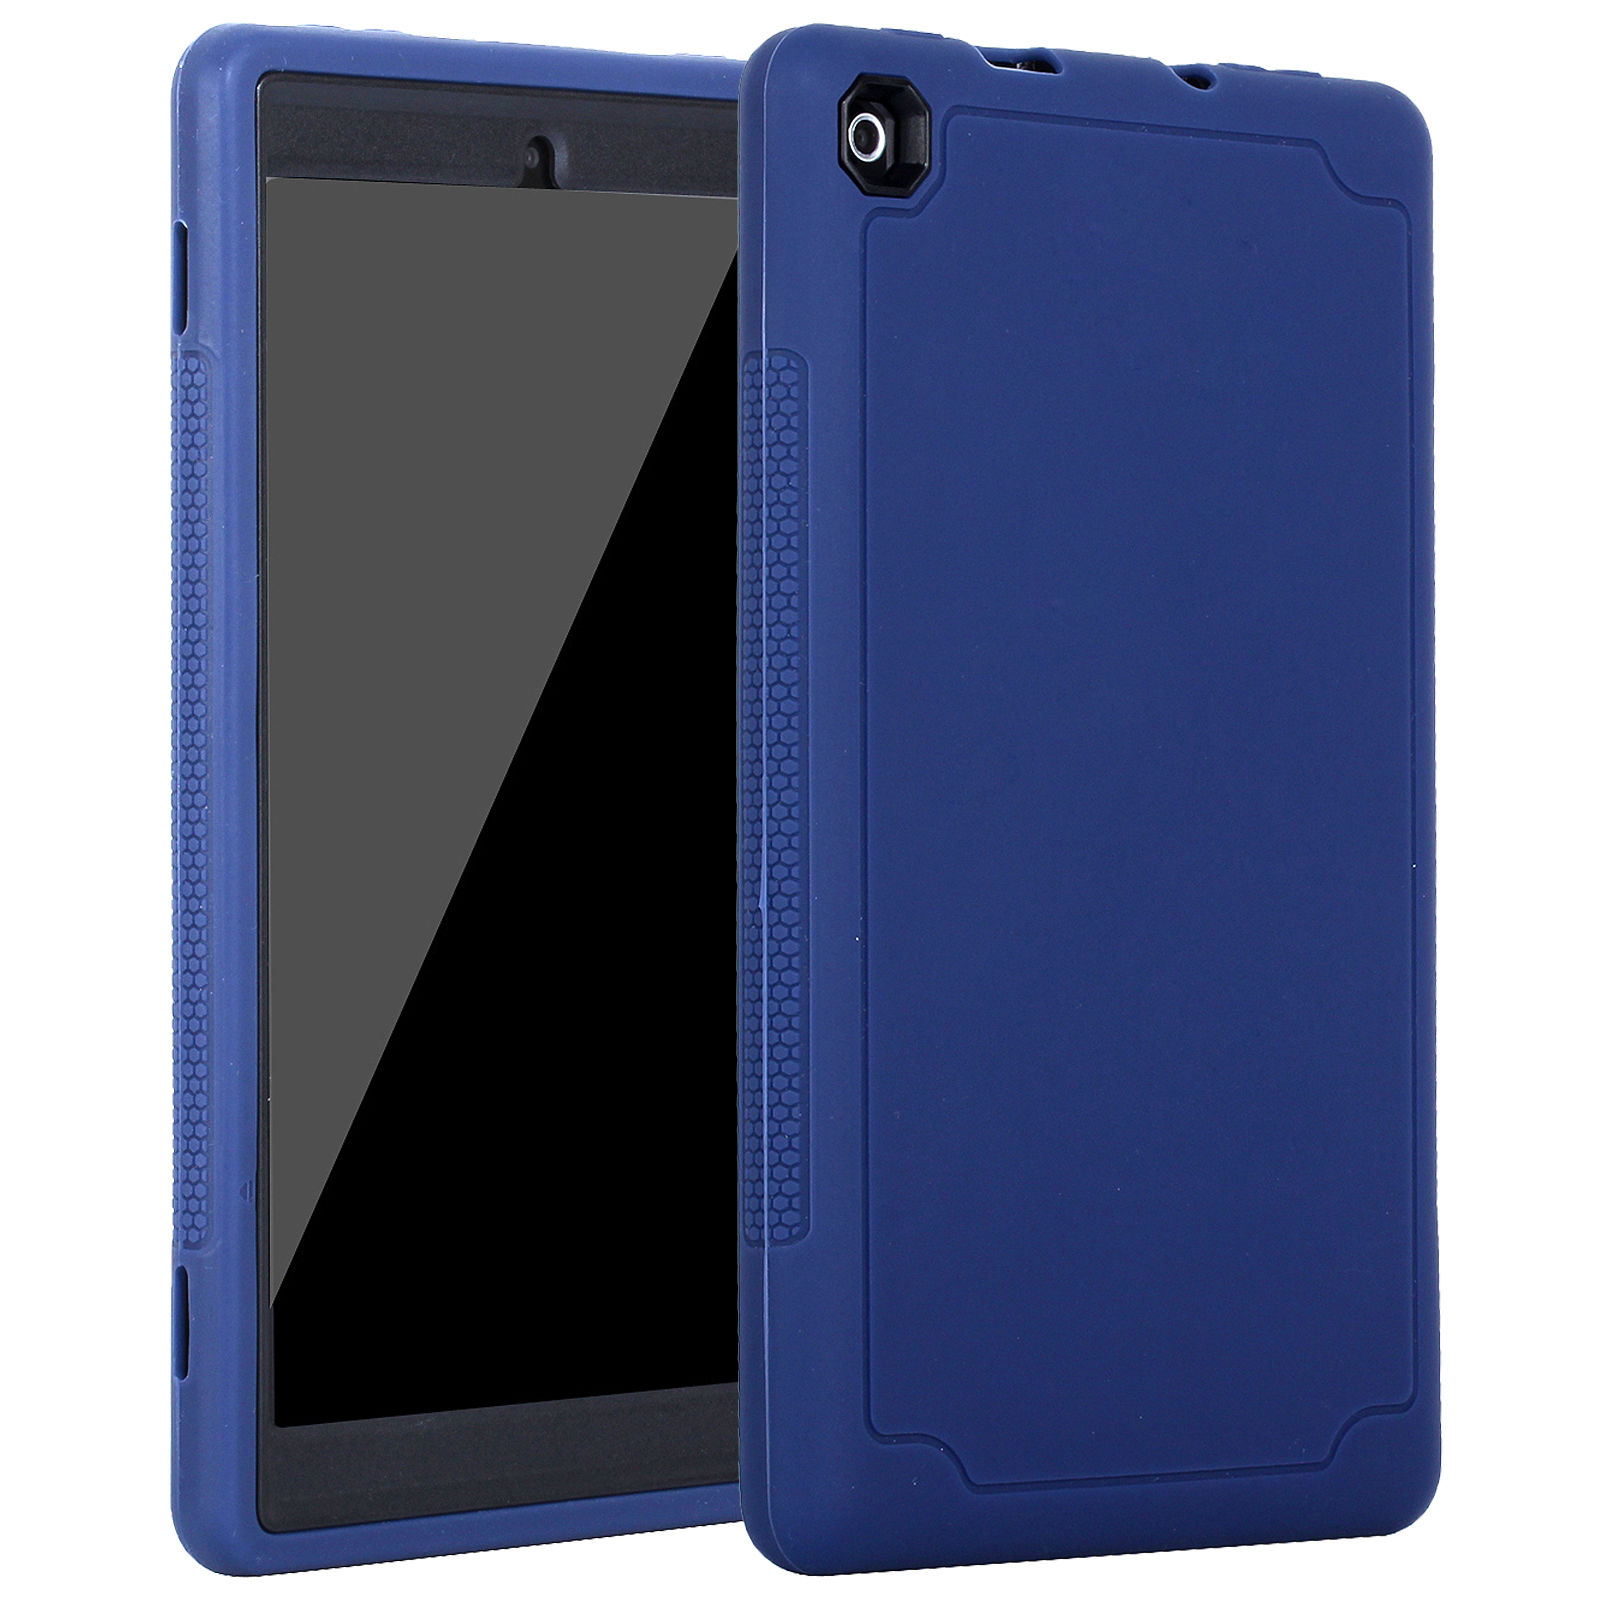 Shockproof Heavy Duty Hybrid Armor Case Cover For Amazon